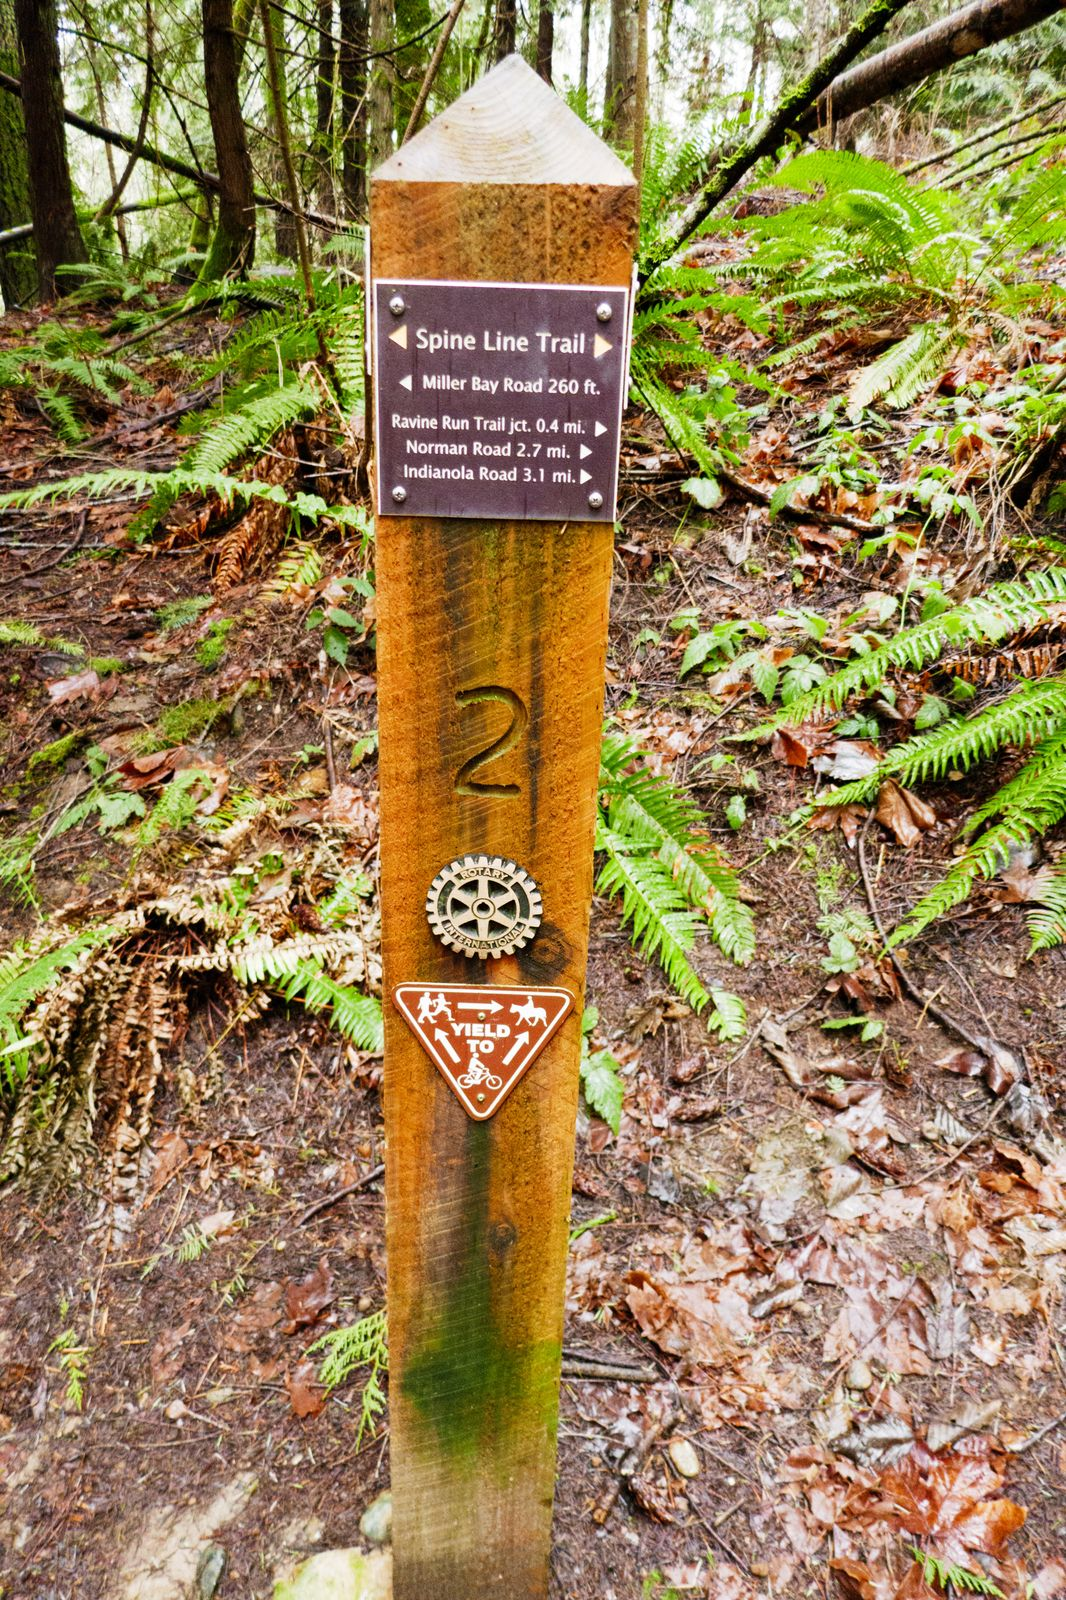 Signage is excellent on the trail